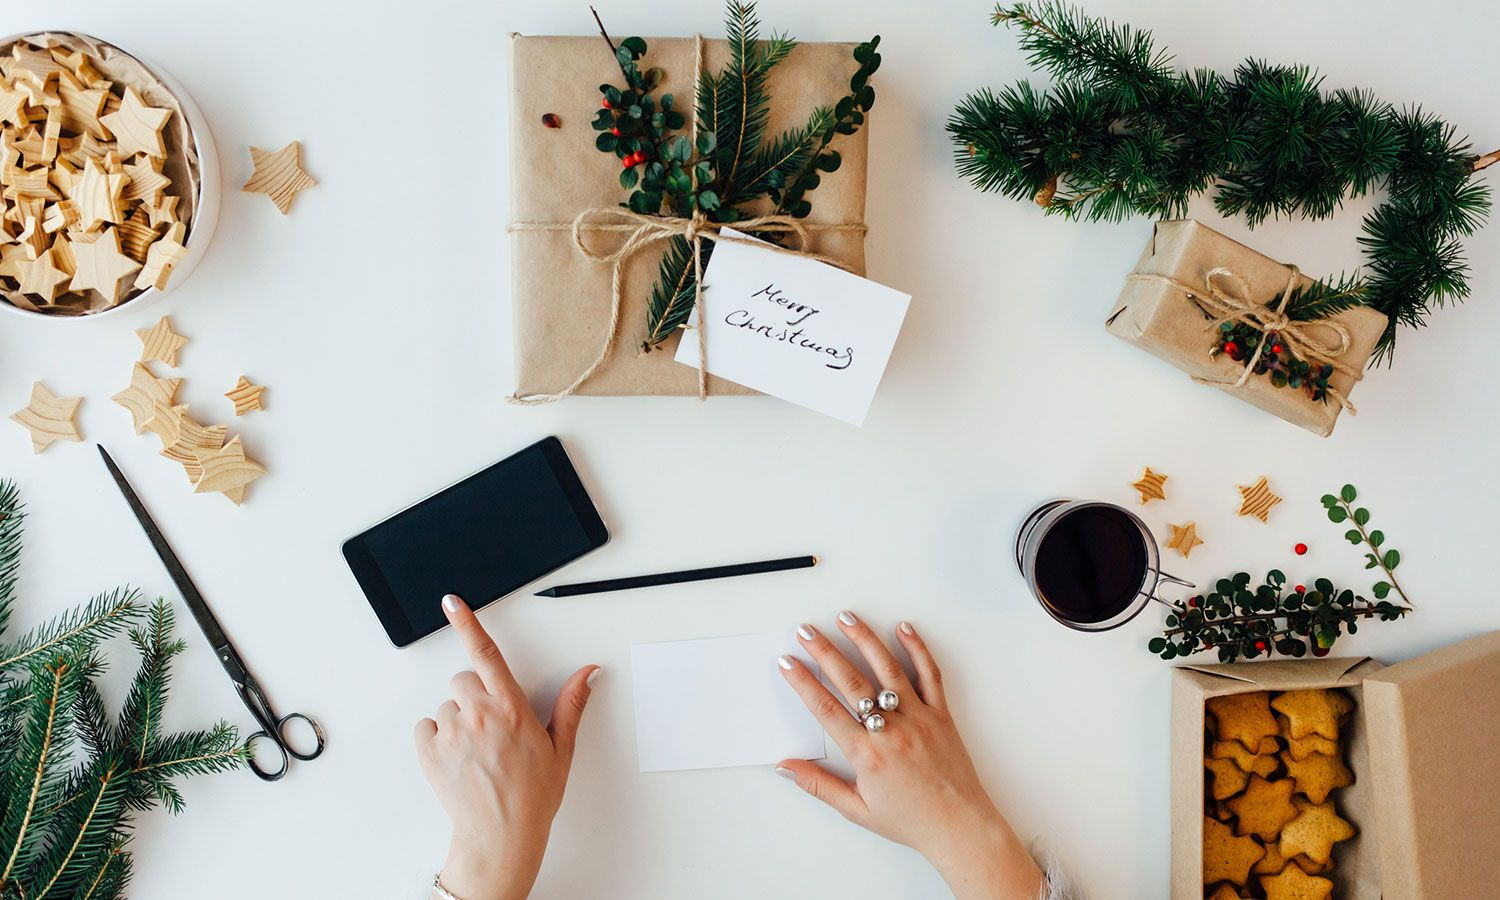 12 Quick Christmas Gift Ideas for Creative Types